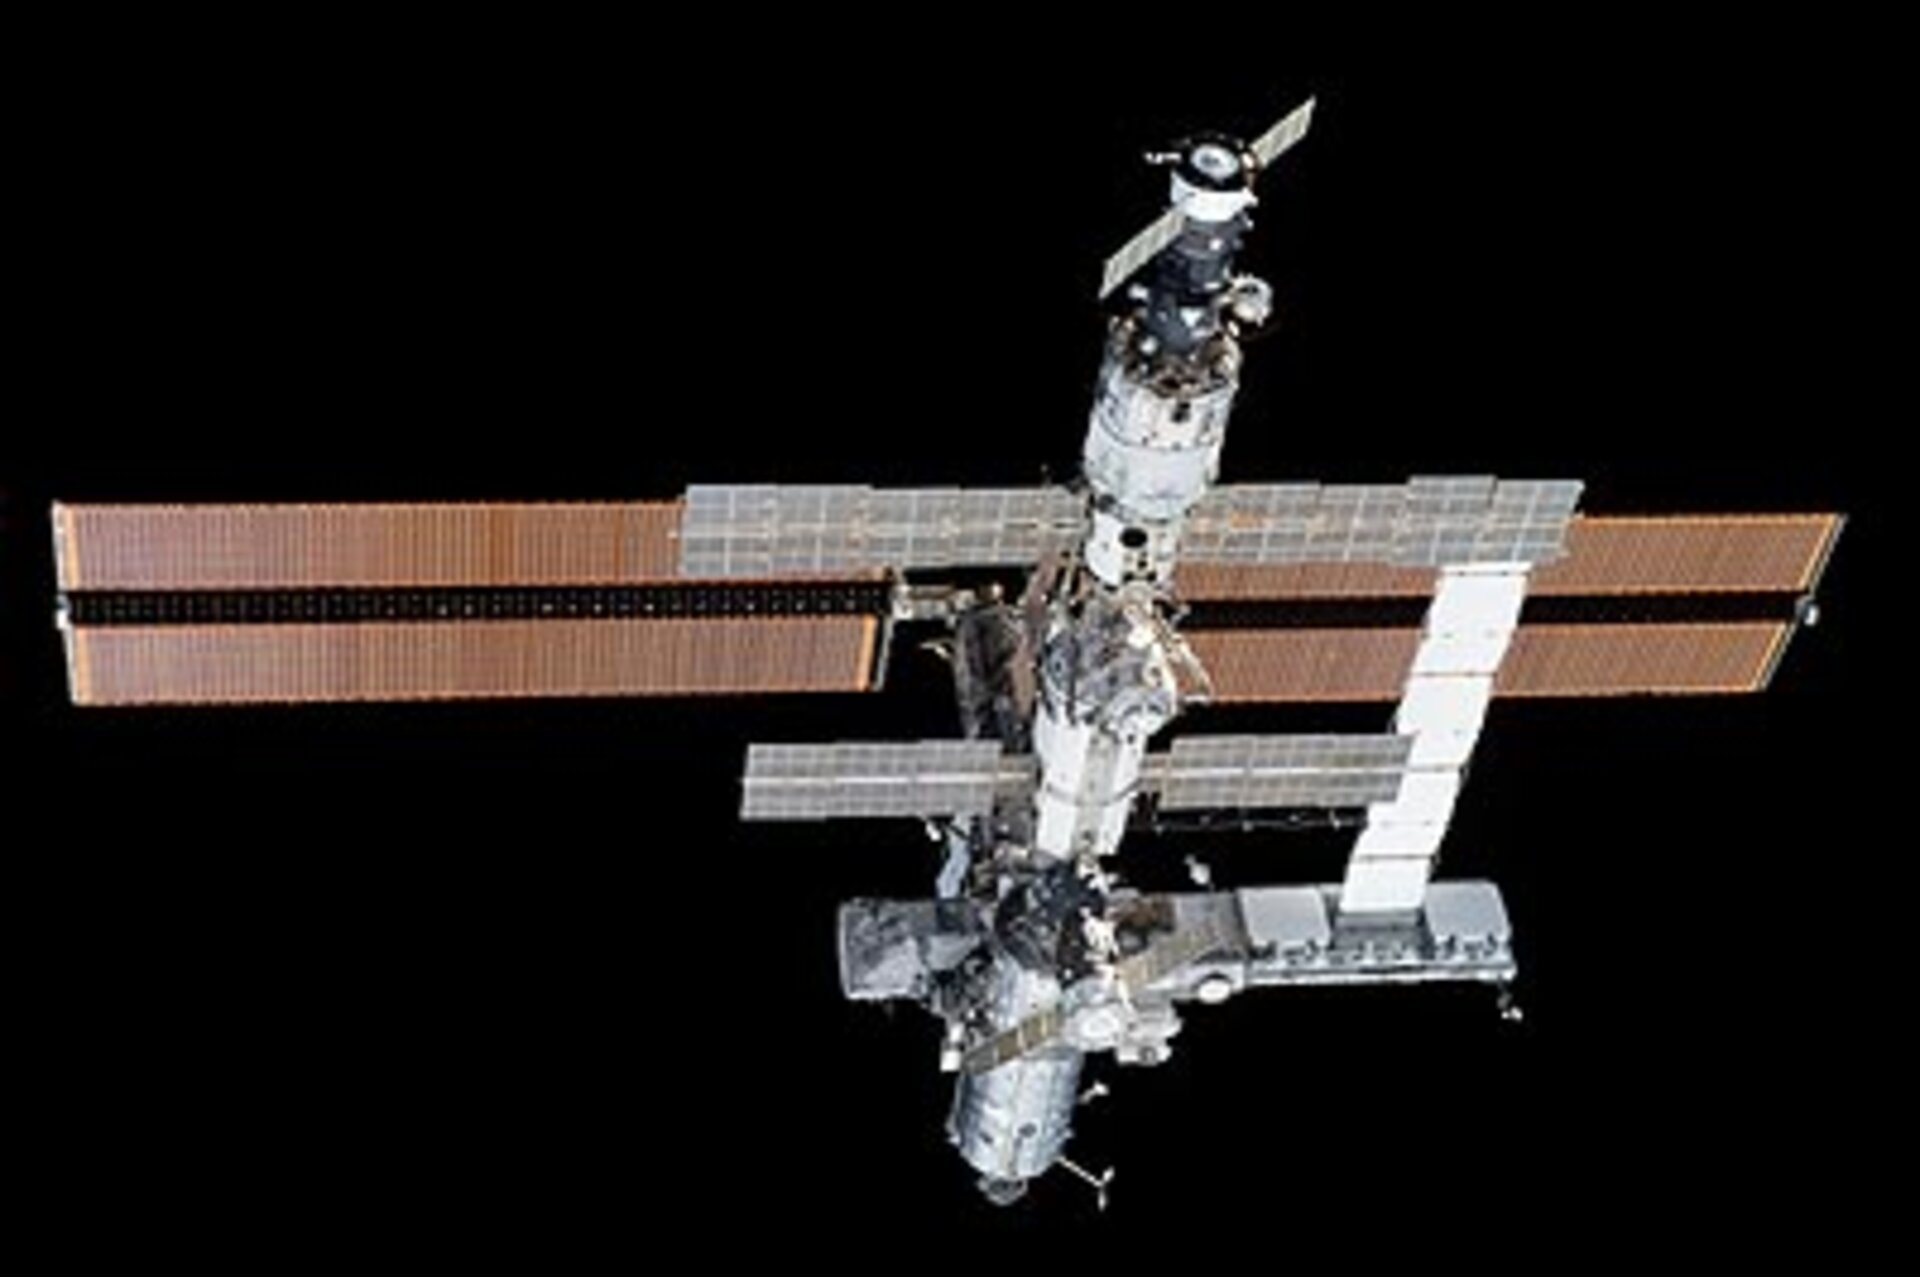 Latest view of the International Space Station